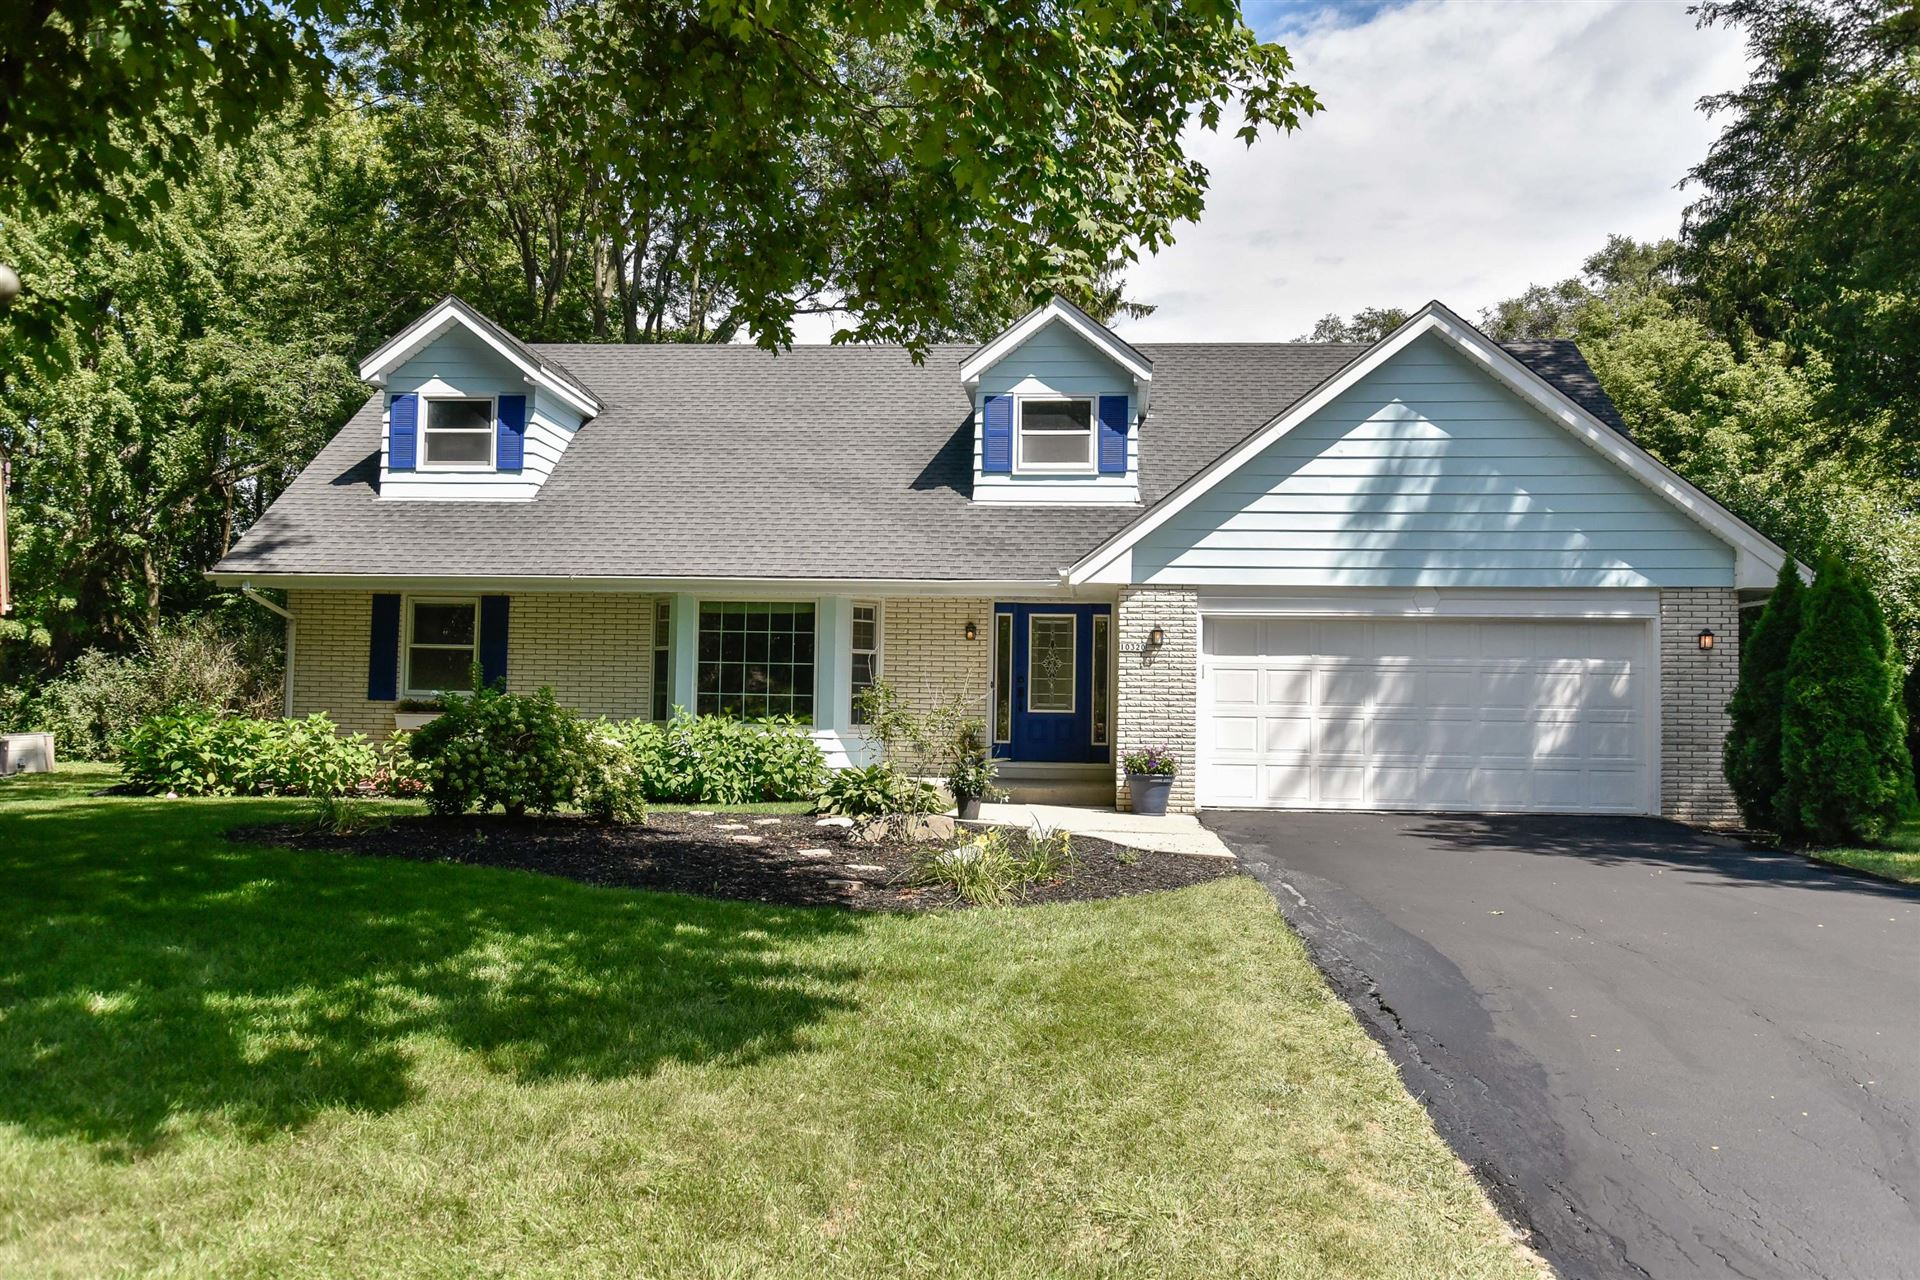 10320 N Provence Ct, Mequon, WI 53092 - #: 1758331